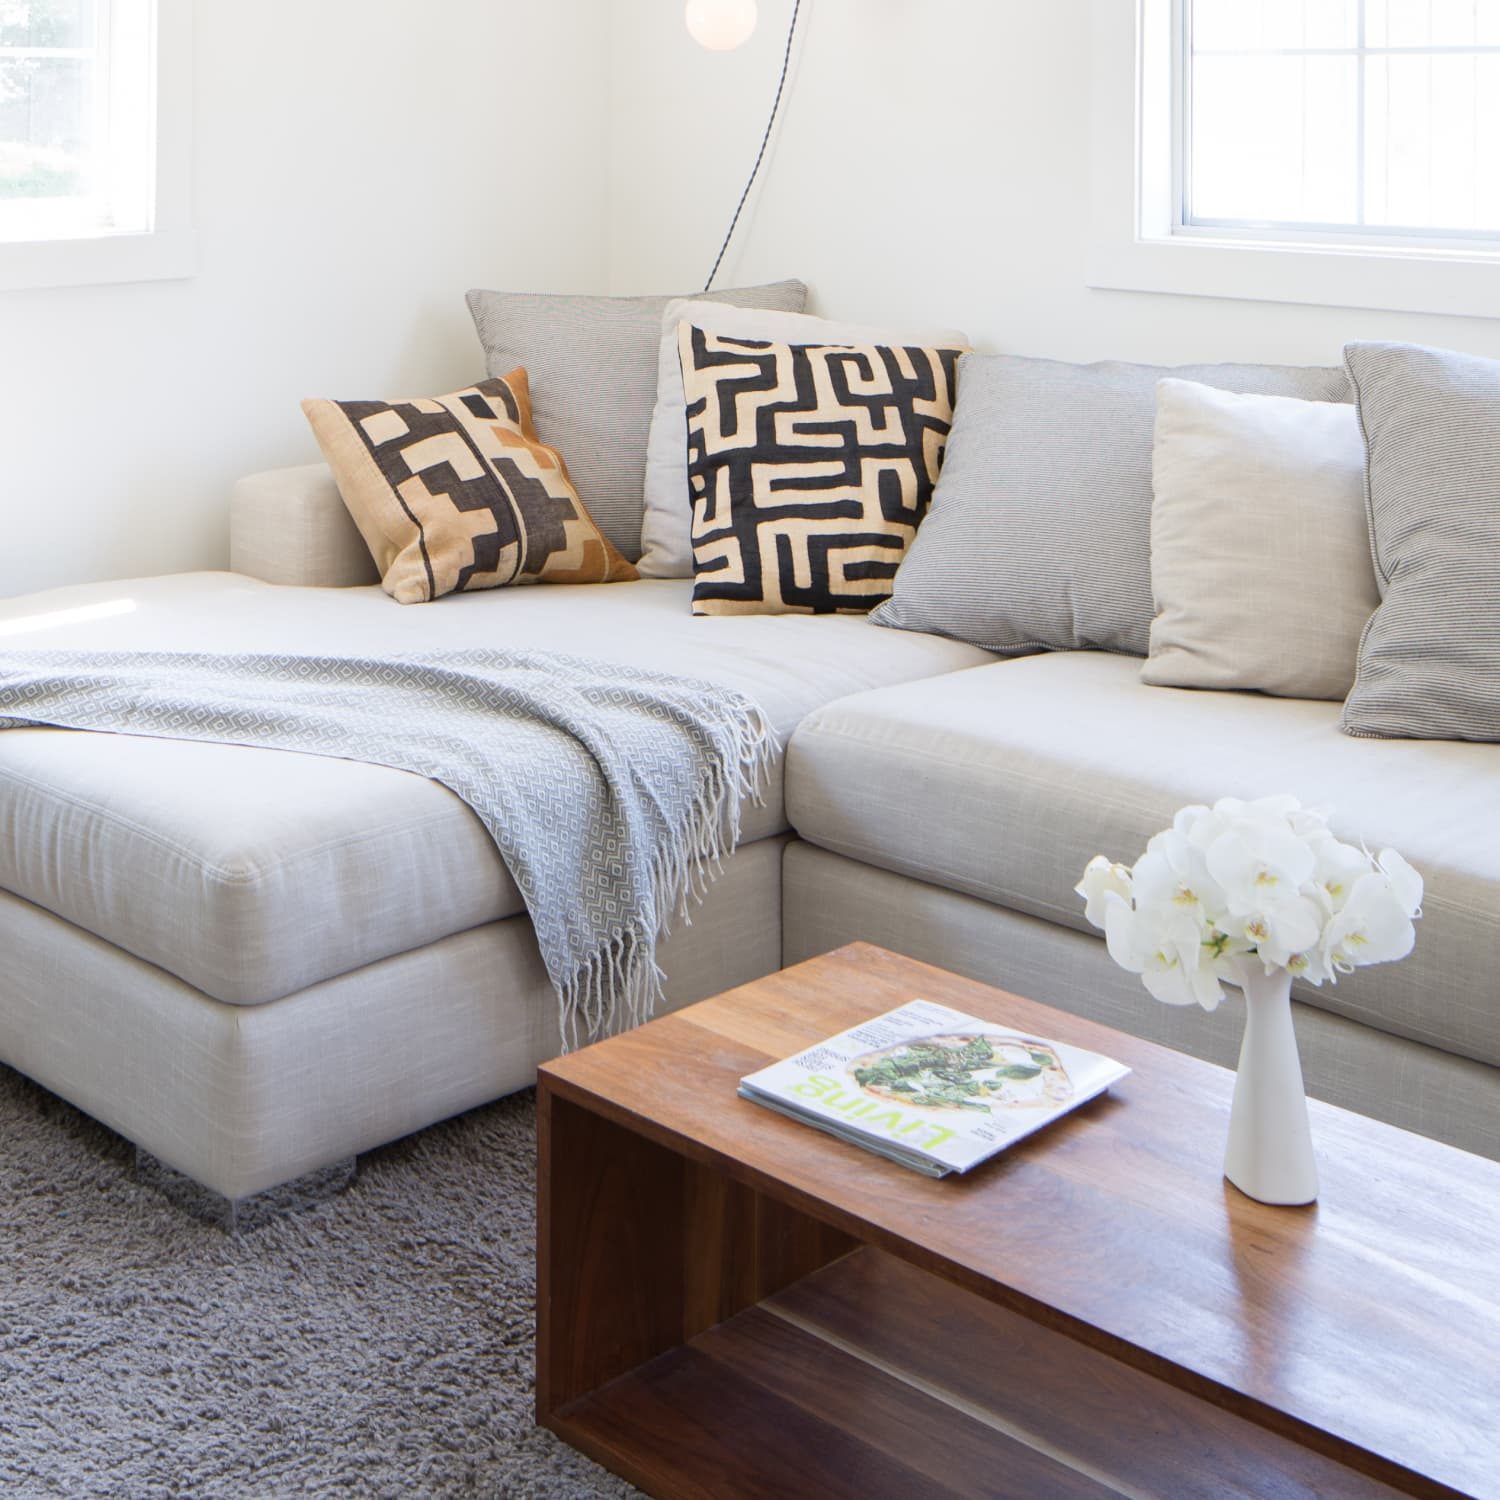 Budget Fixes For Sagging Sofas Apartment Therapy